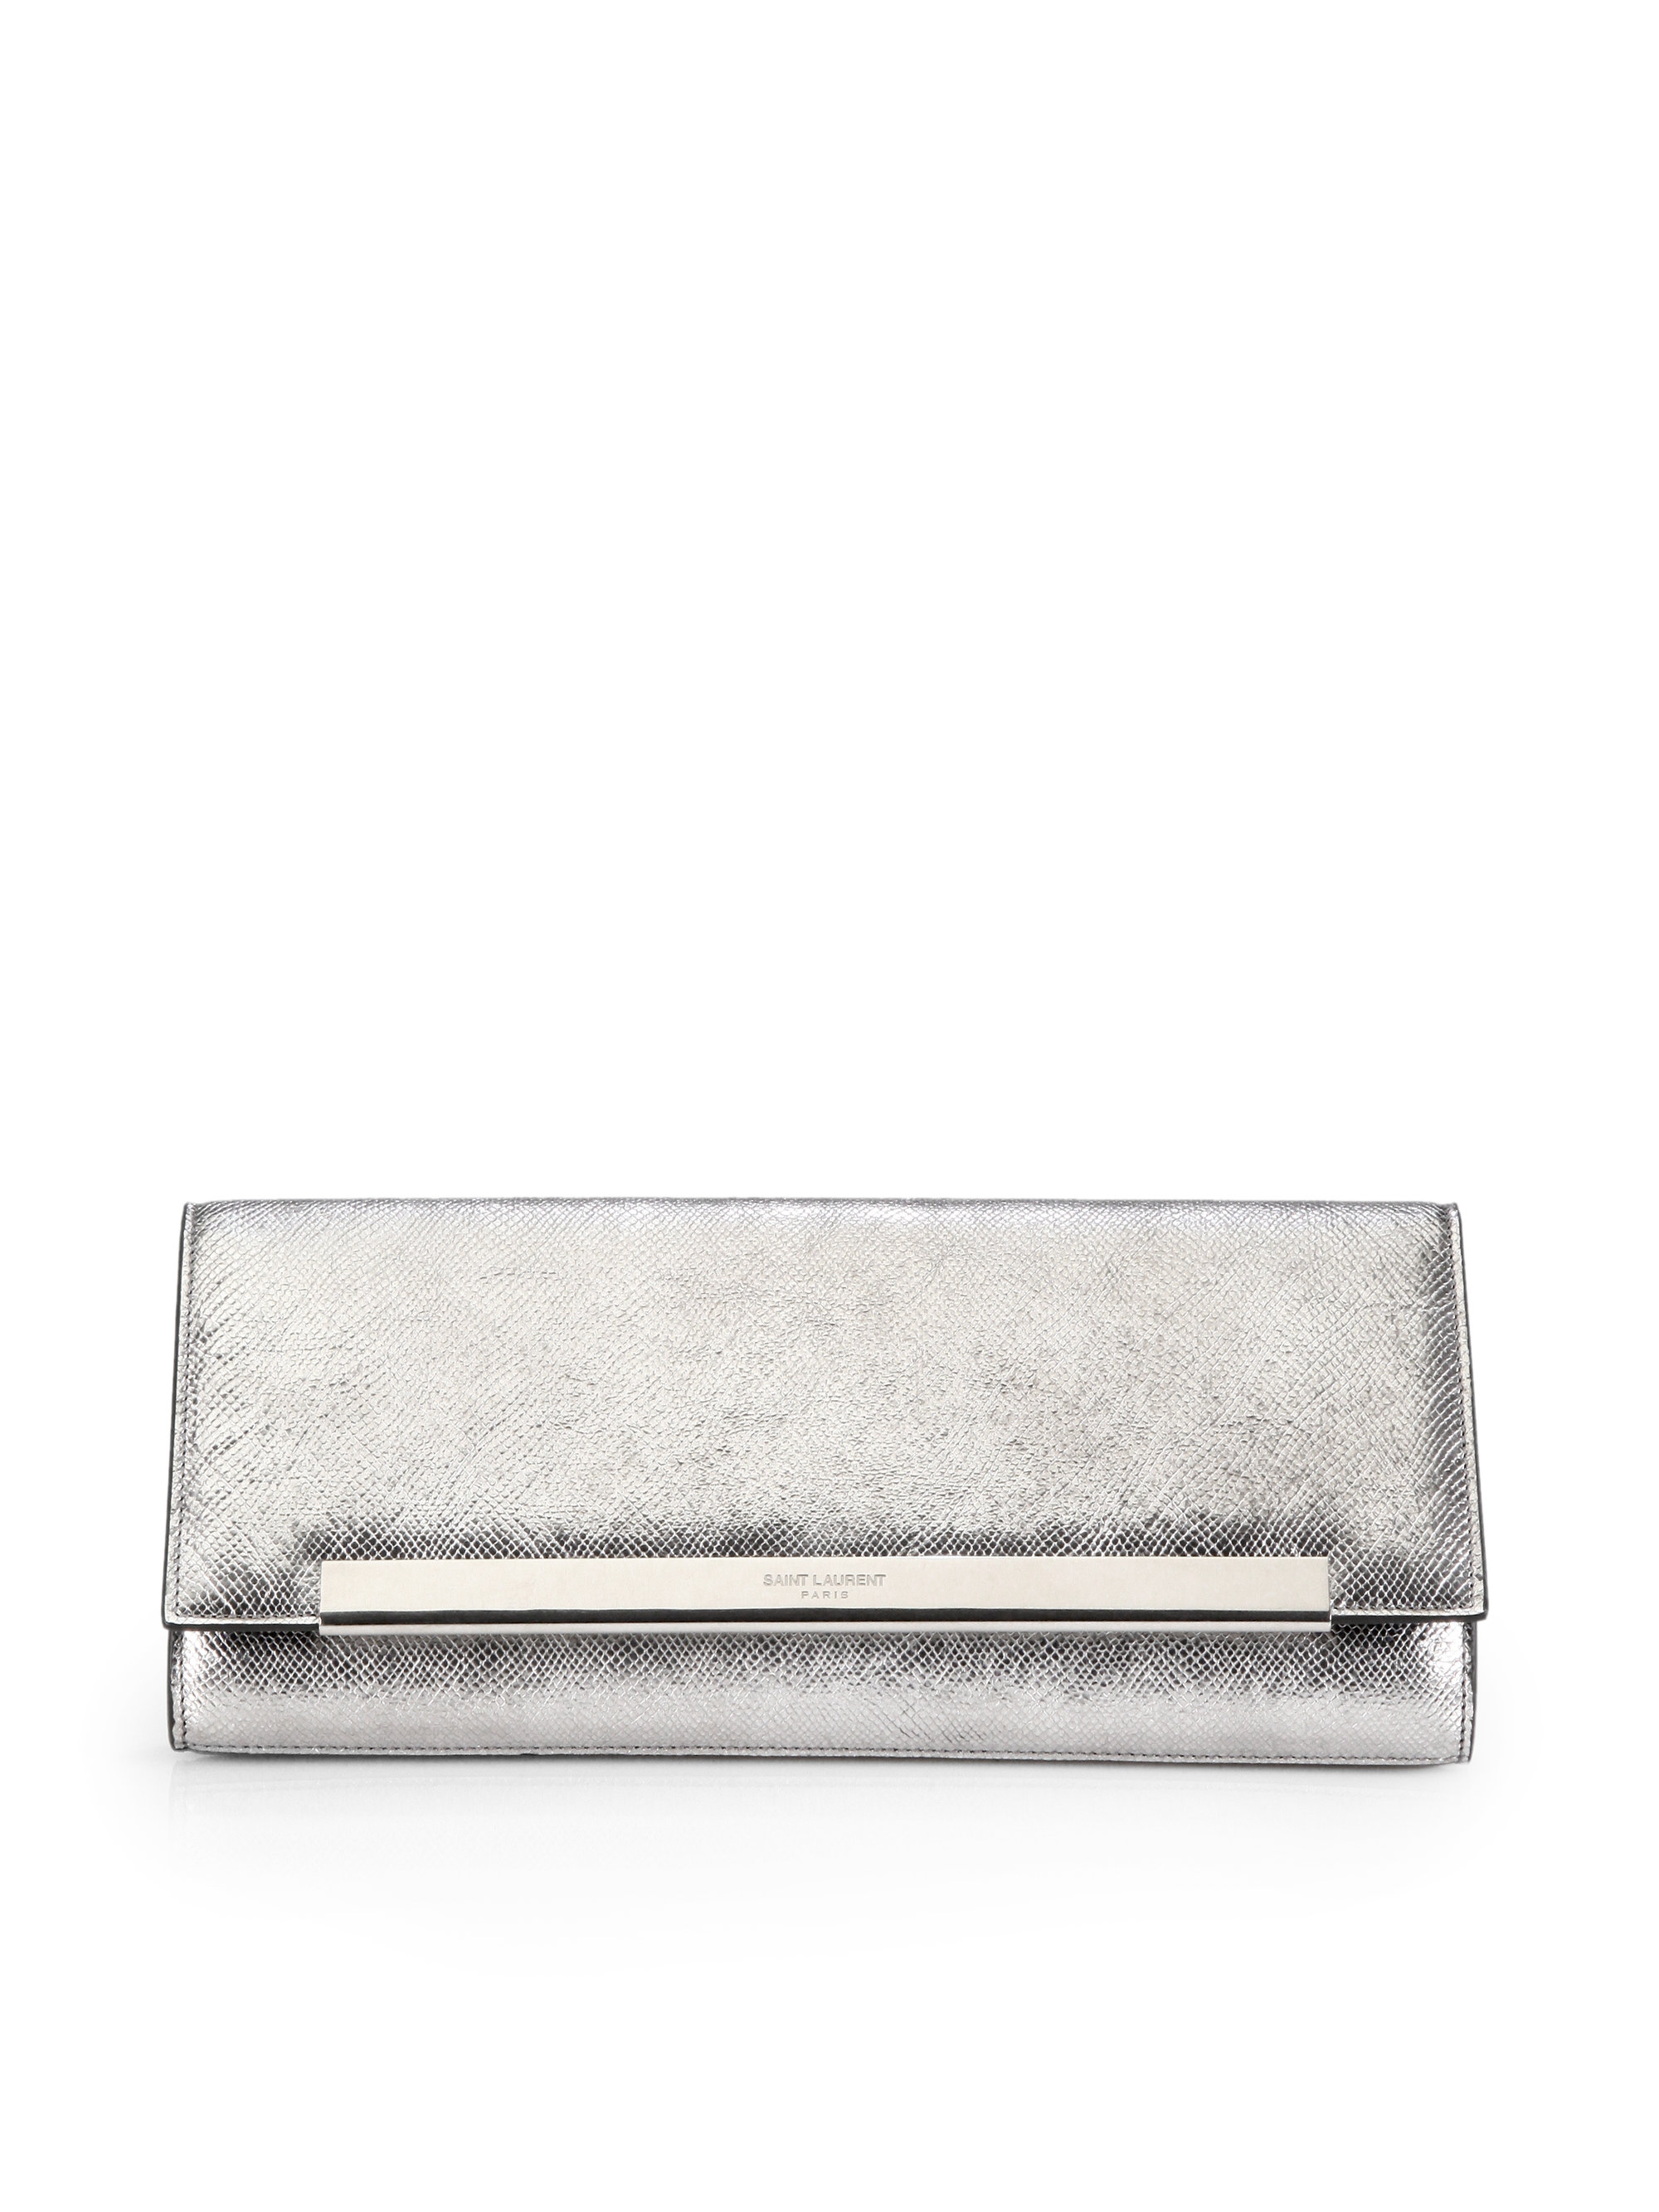 Yves Saint Laurent Metal Flap Suede Clutch Royal Blue